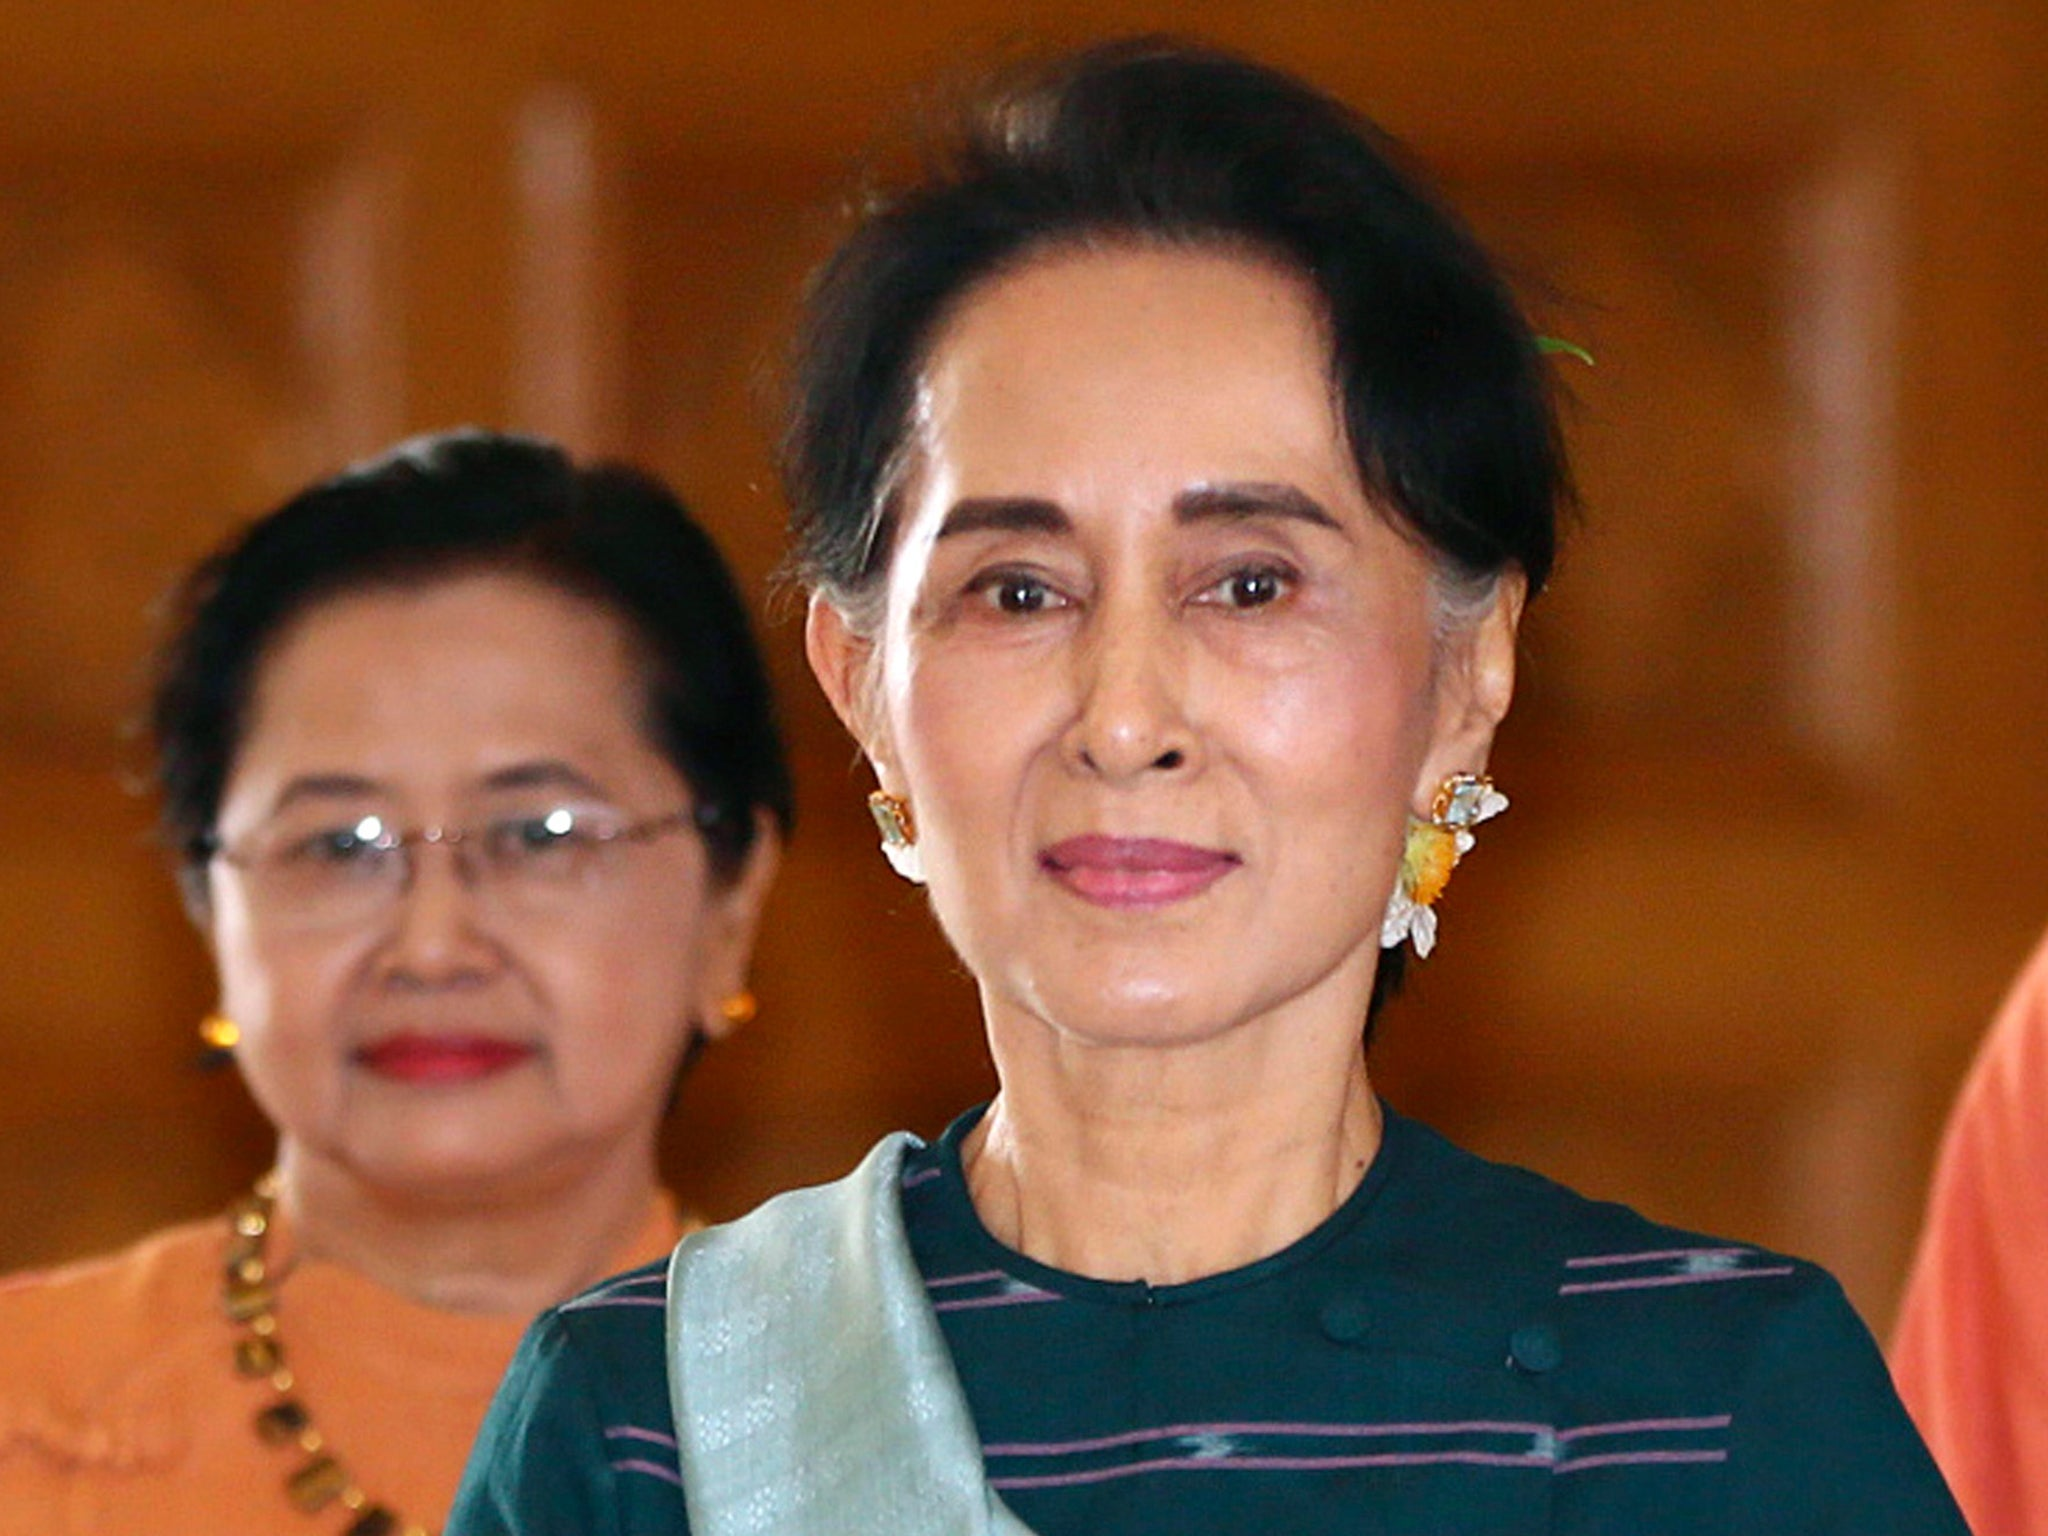 can aung san suu kyi really It really is time to stop making excuses for aung san suu kyi over  peace in myanmar can only prevail through  follow the national's opinion section on.